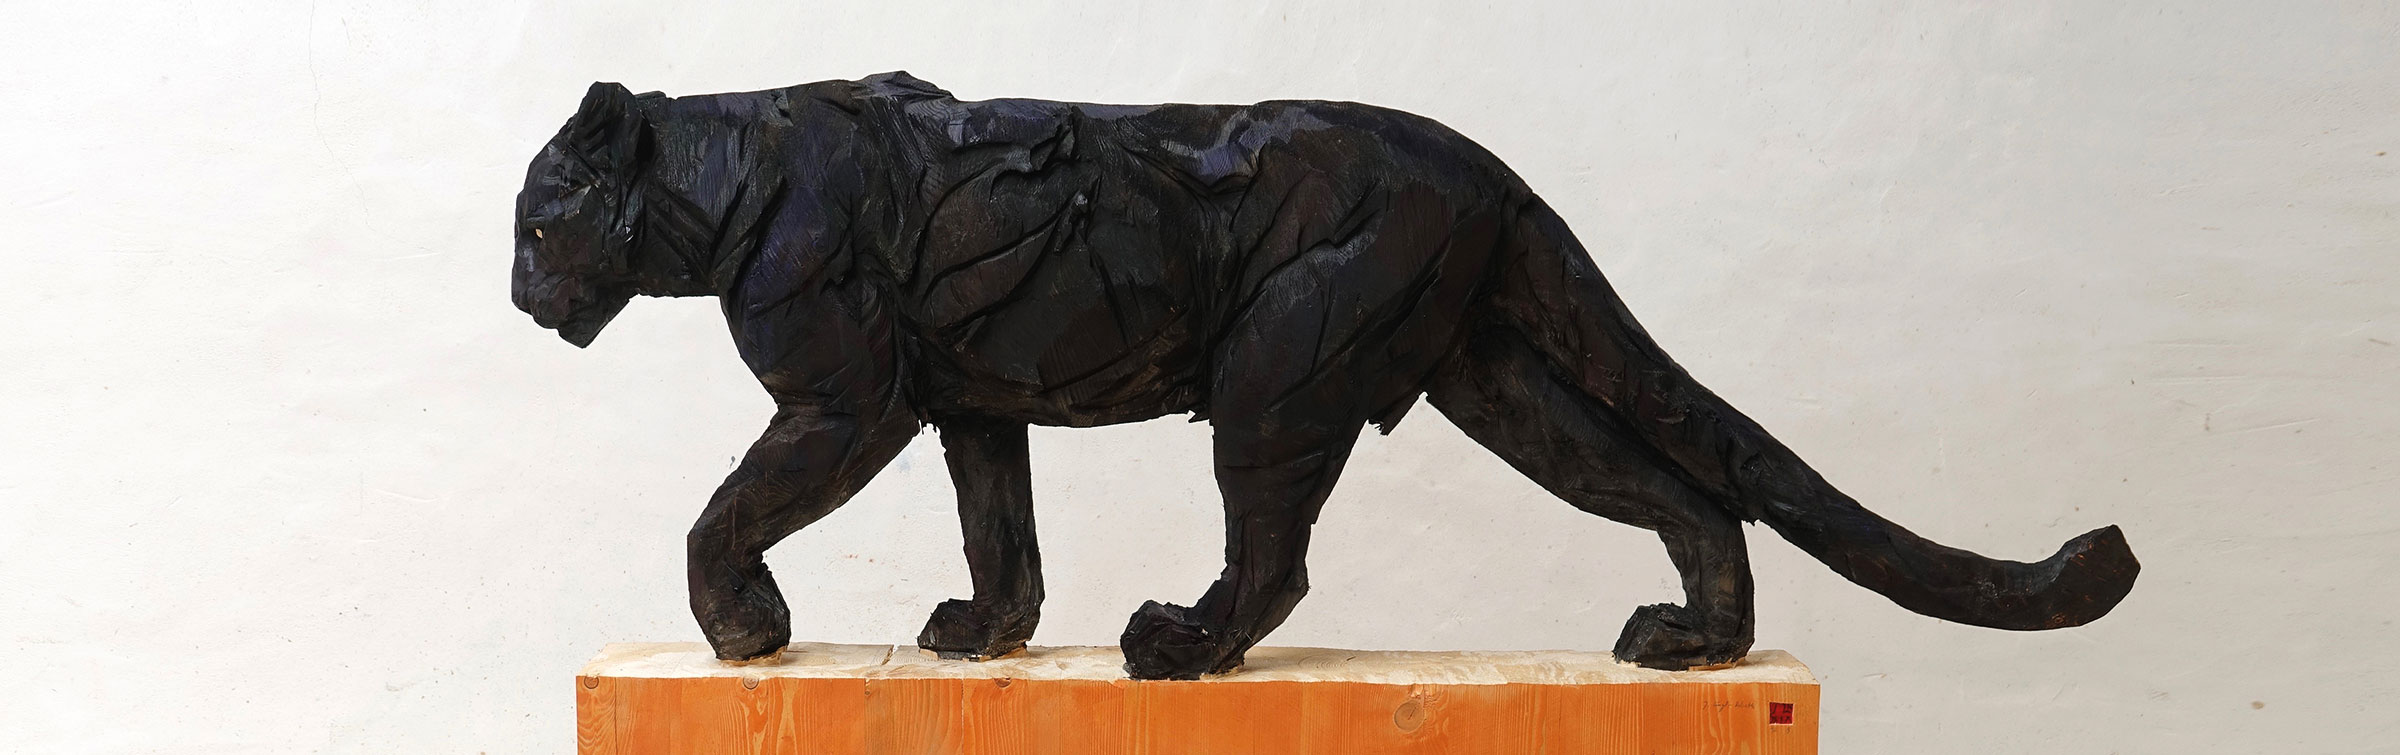 Black Walking Panther, header - Jürgen Lingl-Rebetez - Leonhard's Gallery